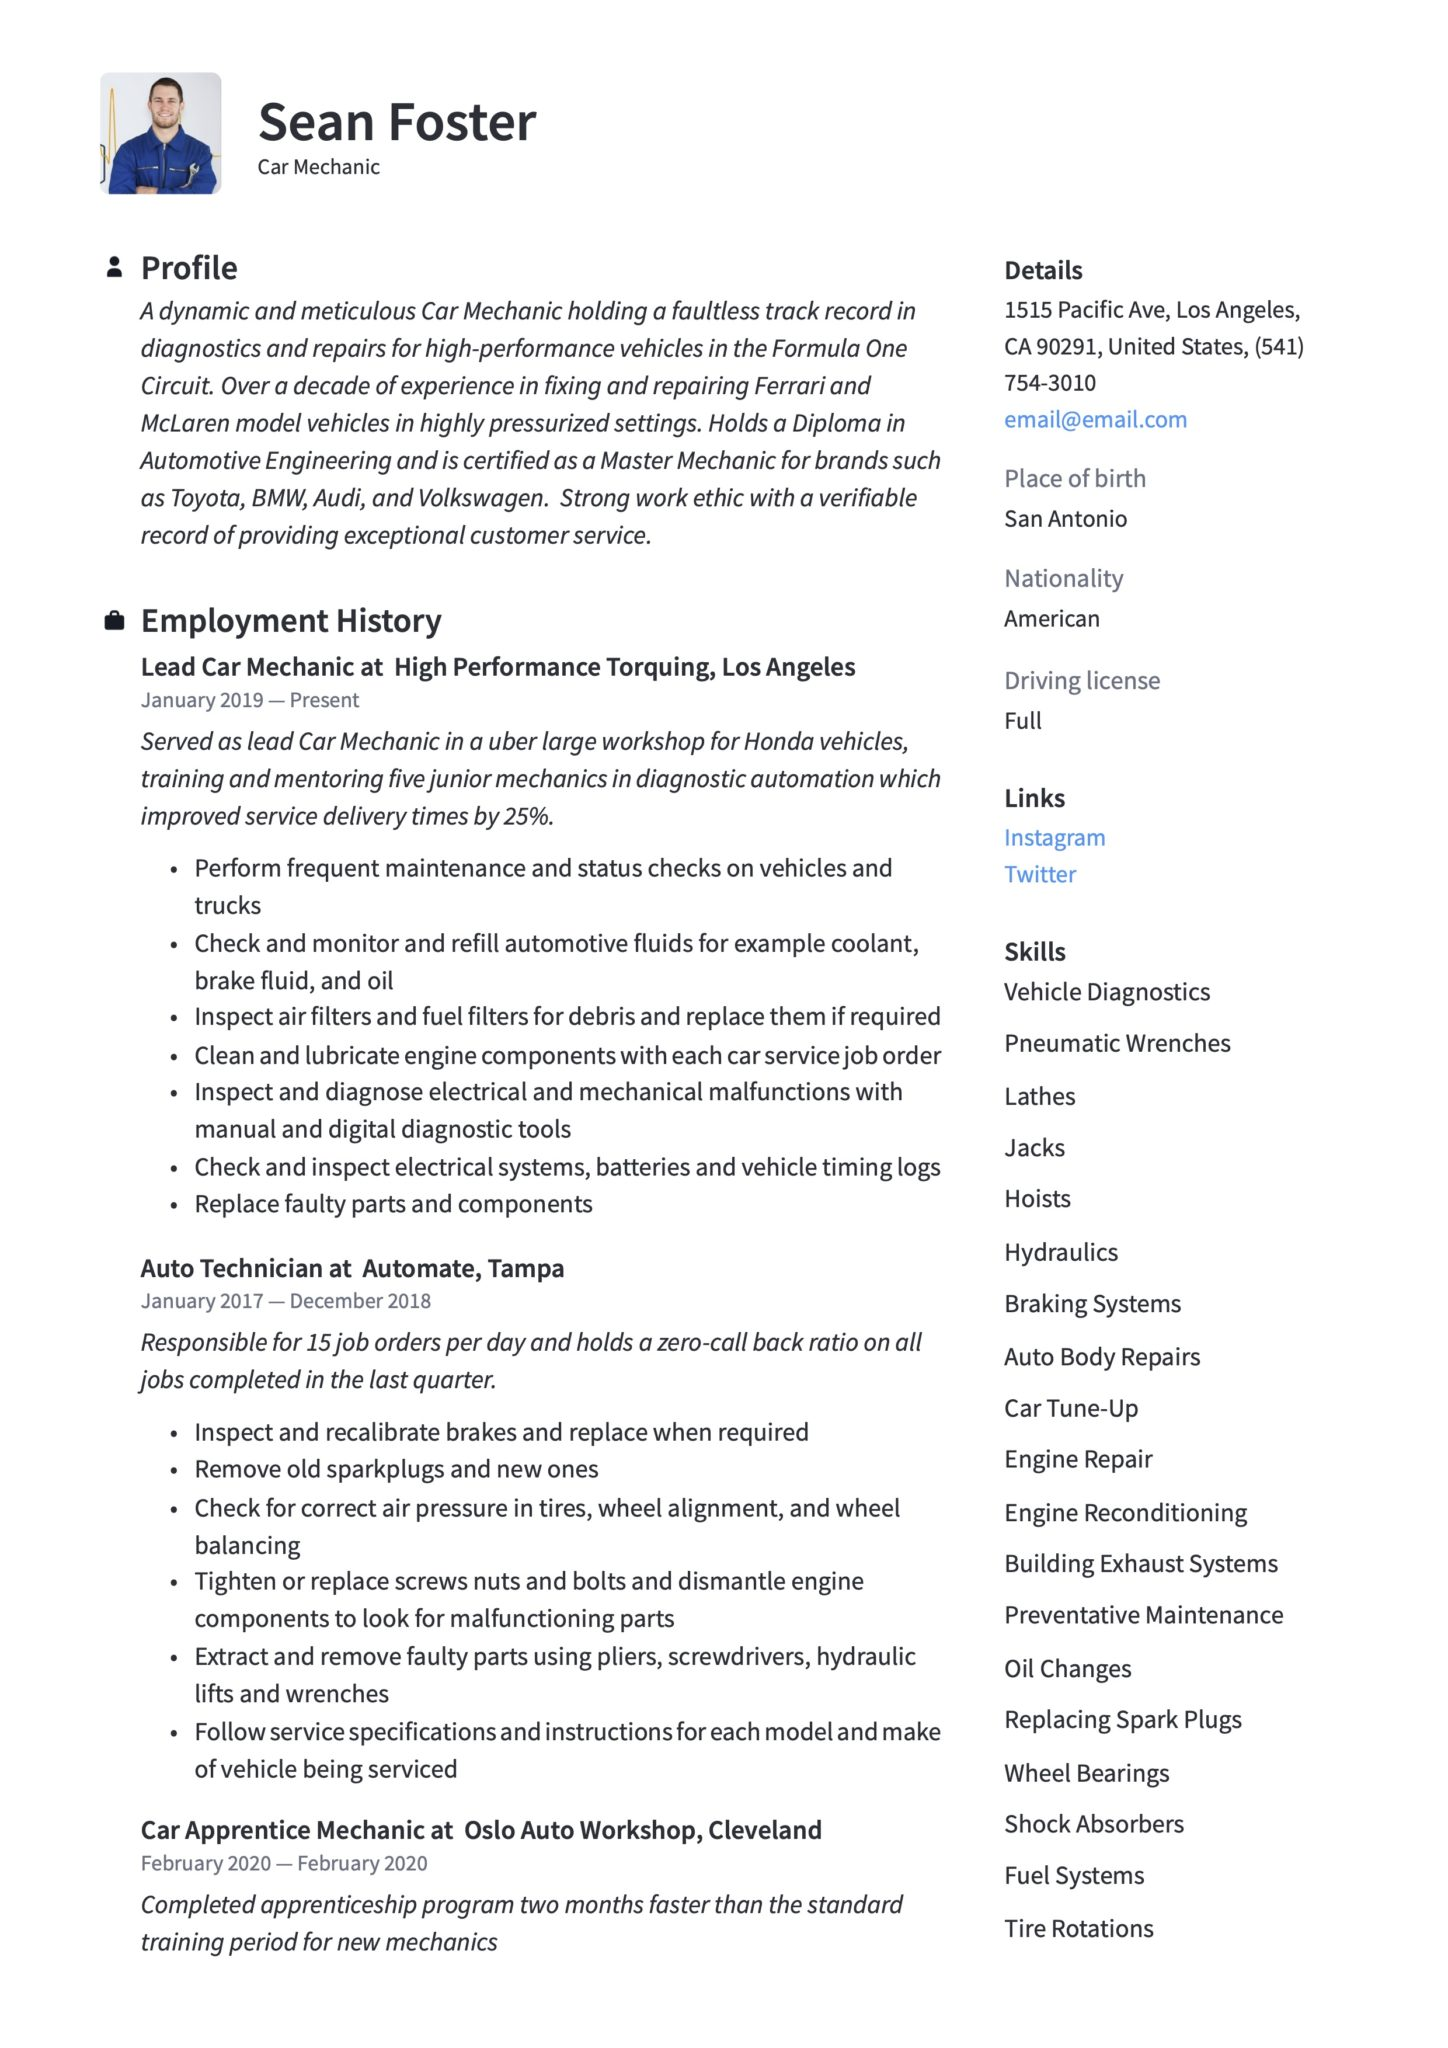 car mechanic resume guide examples diesel samples scaled accent best software master Resume Diesel Mechanic Resume Samples Examples